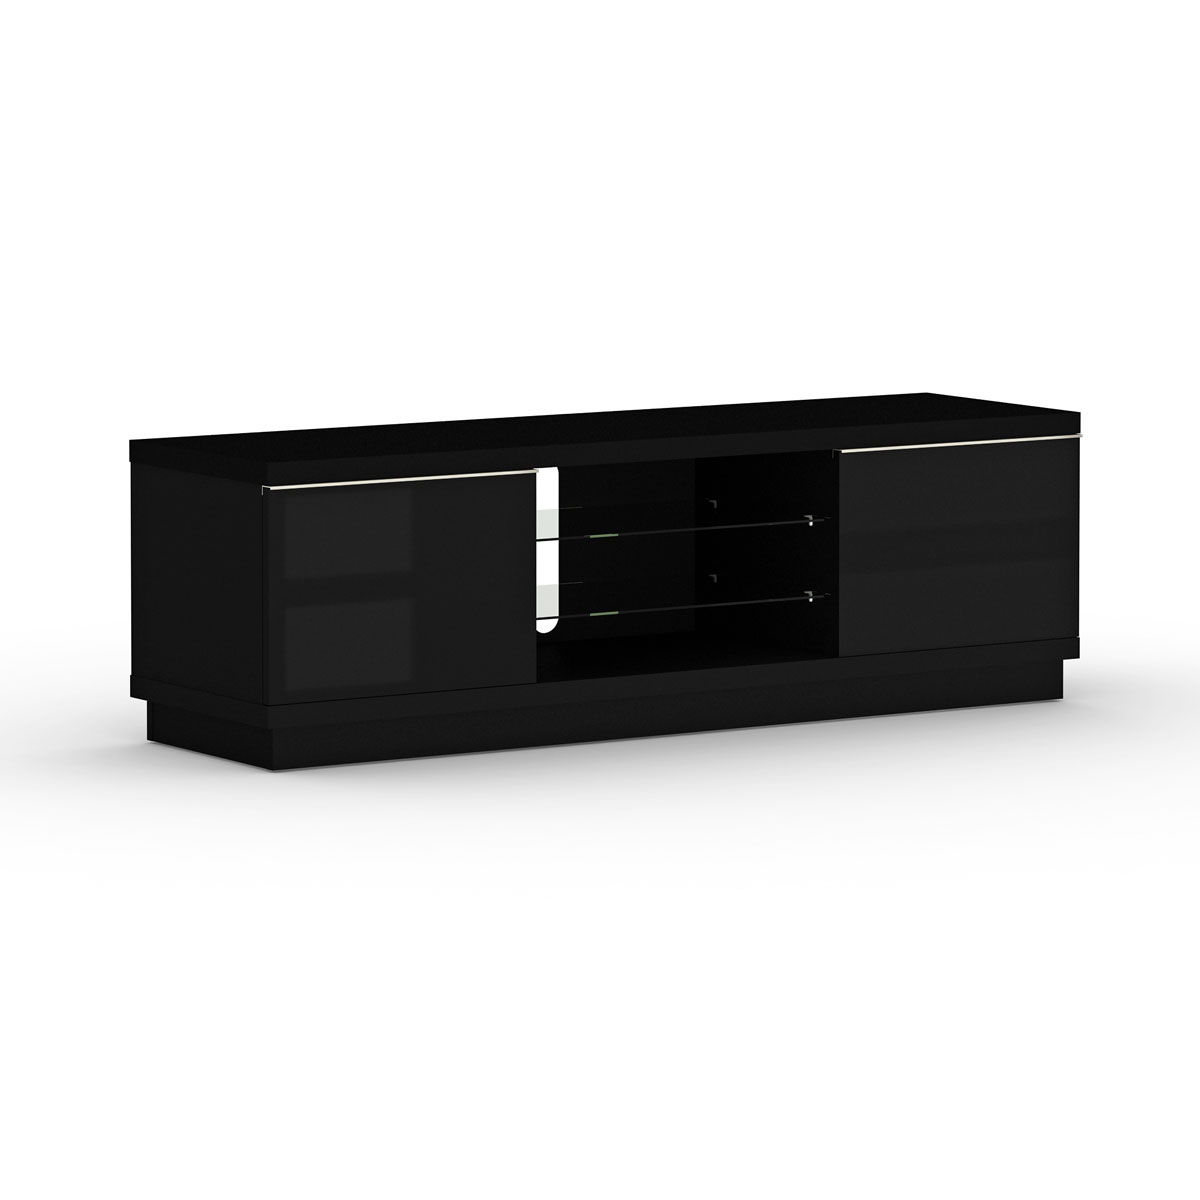 elmob harmony ha 160 01 noir meuble tv elmob sur. Black Bedroom Furniture Sets. Home Design Ideas